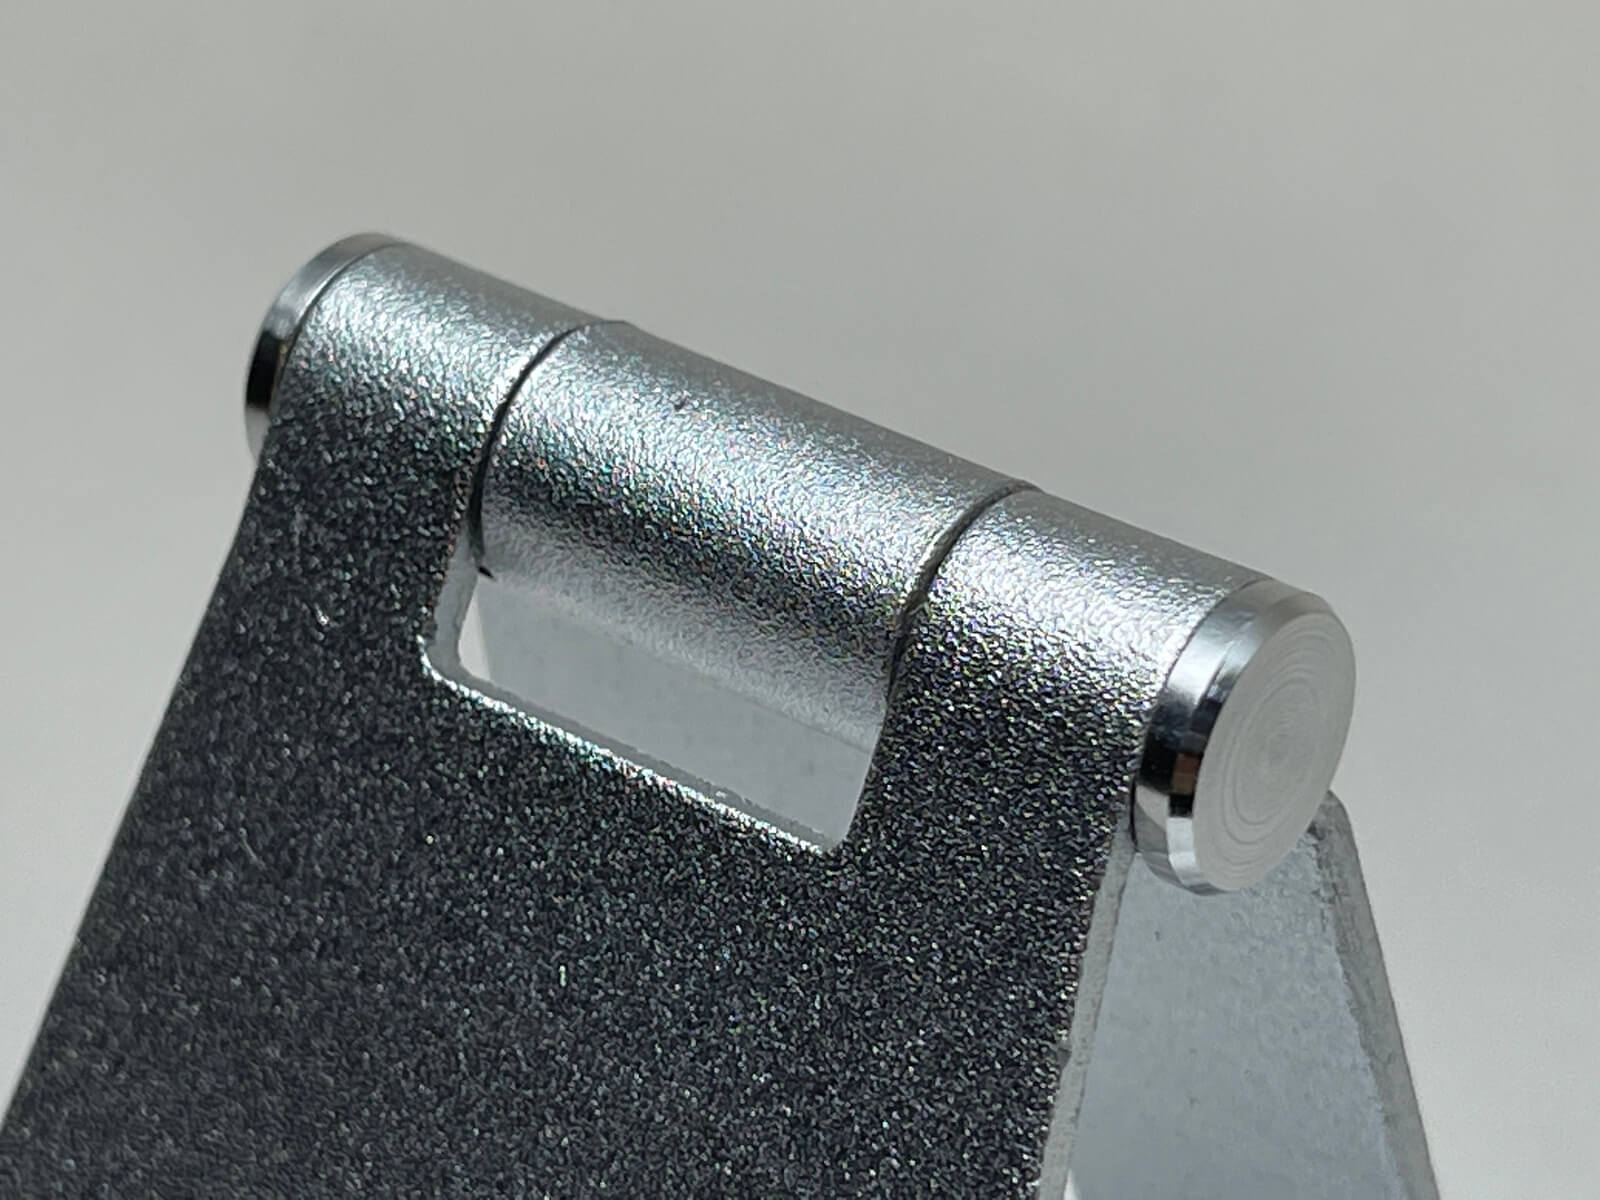 iphone12-stand-01-photo-020